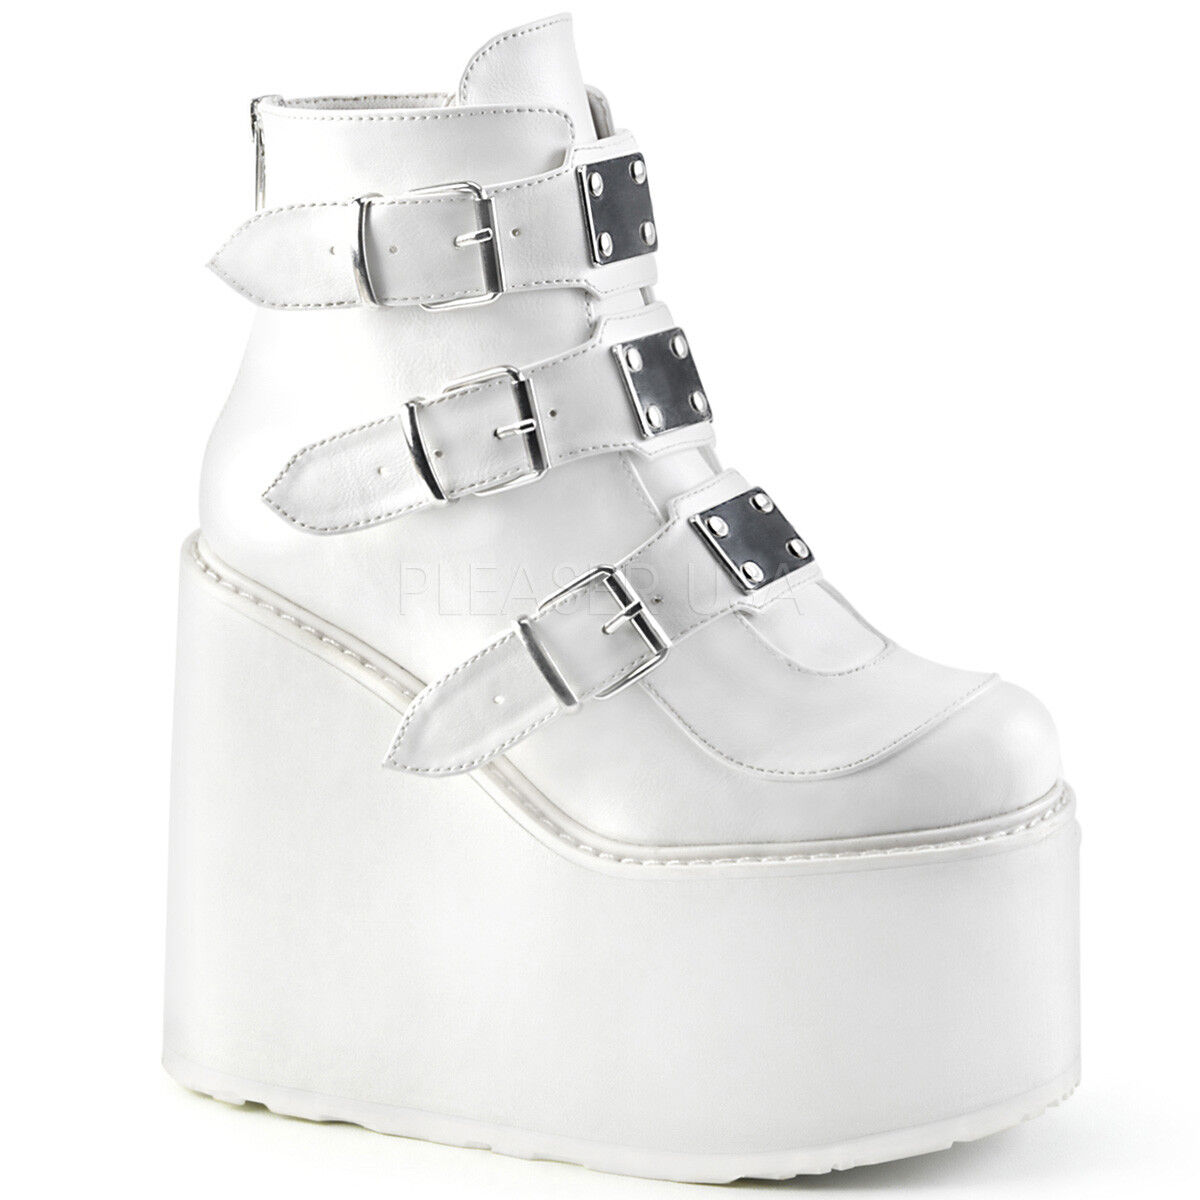 Demonia SWING-105 Women's White Vegan Leather Wedge Platform 3 Buckle Ankle Boot